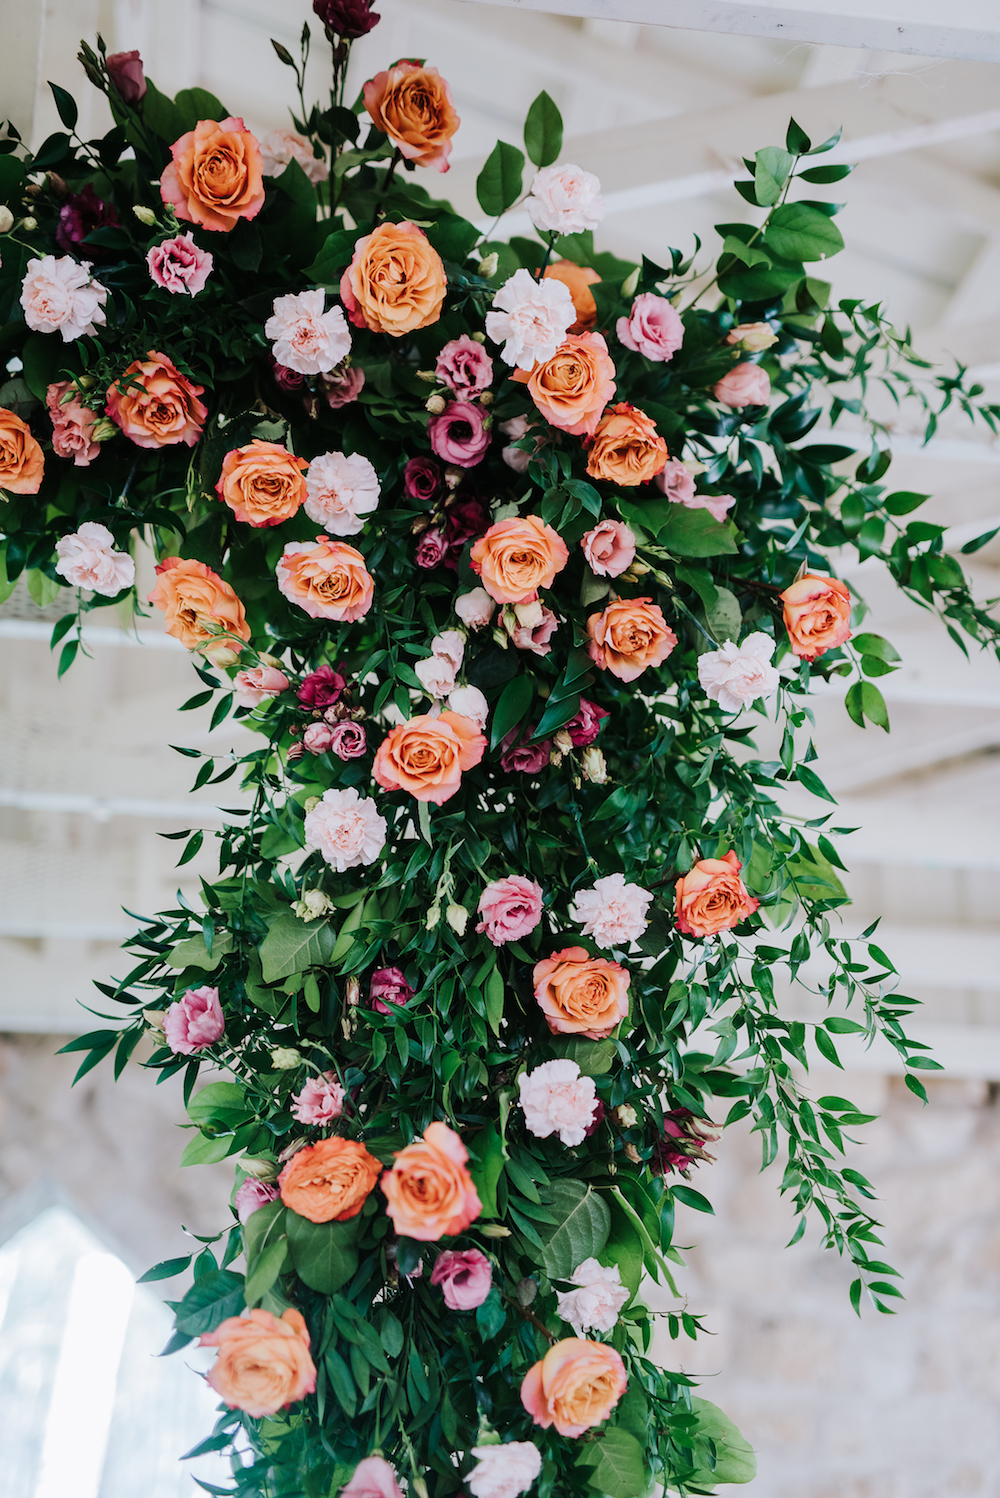 Orange and Peach Wedding Flowers - Hanging Floral Installation